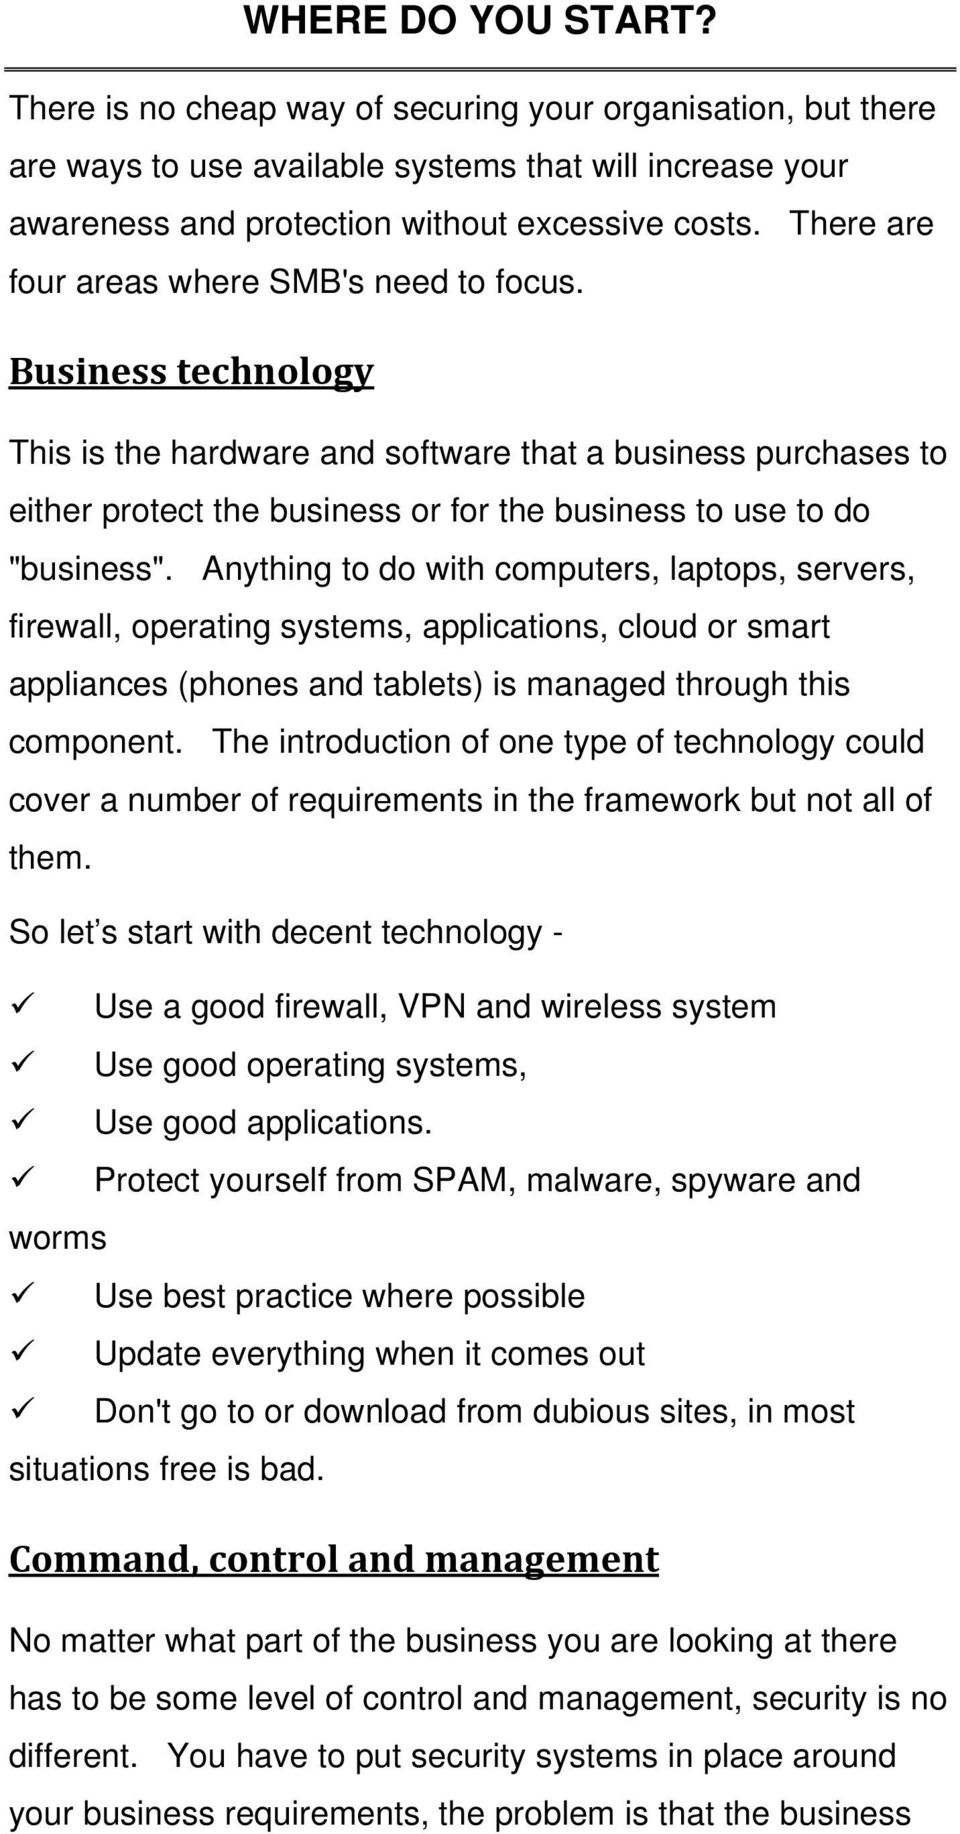 "Business technology This is the hardware and software that a business purchases to either protect the business or for the business to use to do ""business""."